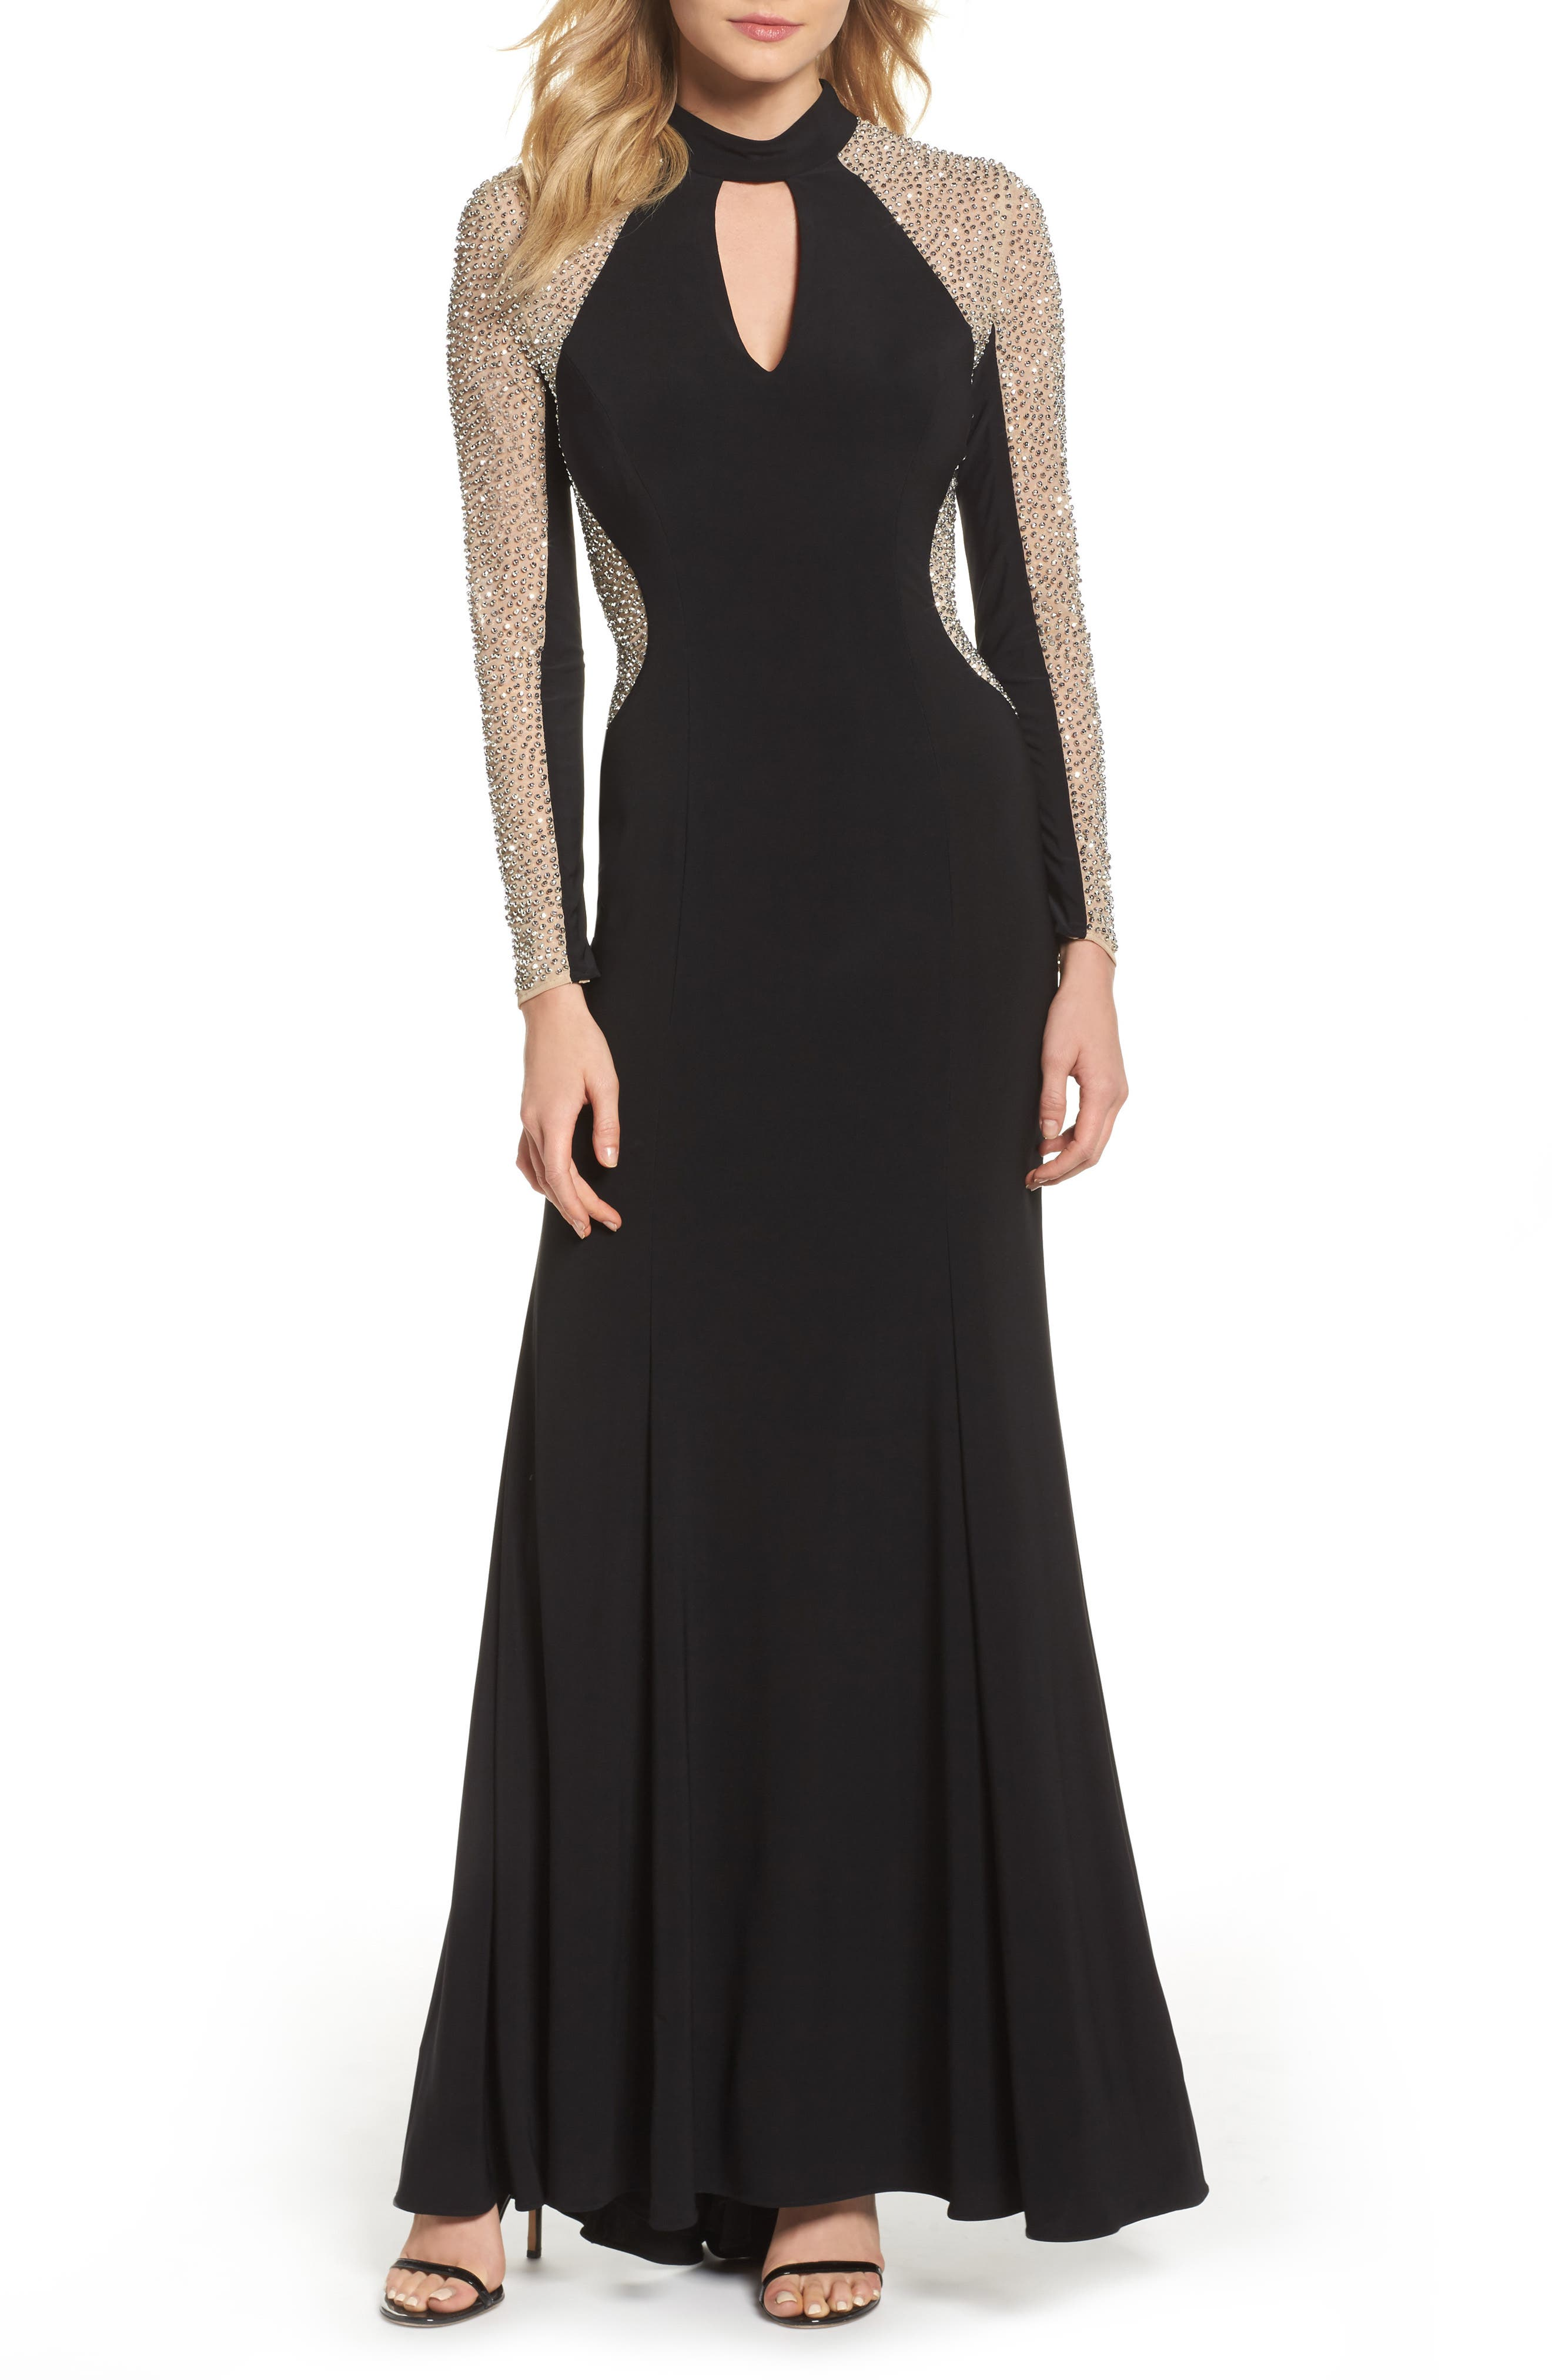 Beaded Choker Neck Gown,                         Main,                         color, BLACK/ NUDE/ SILVER